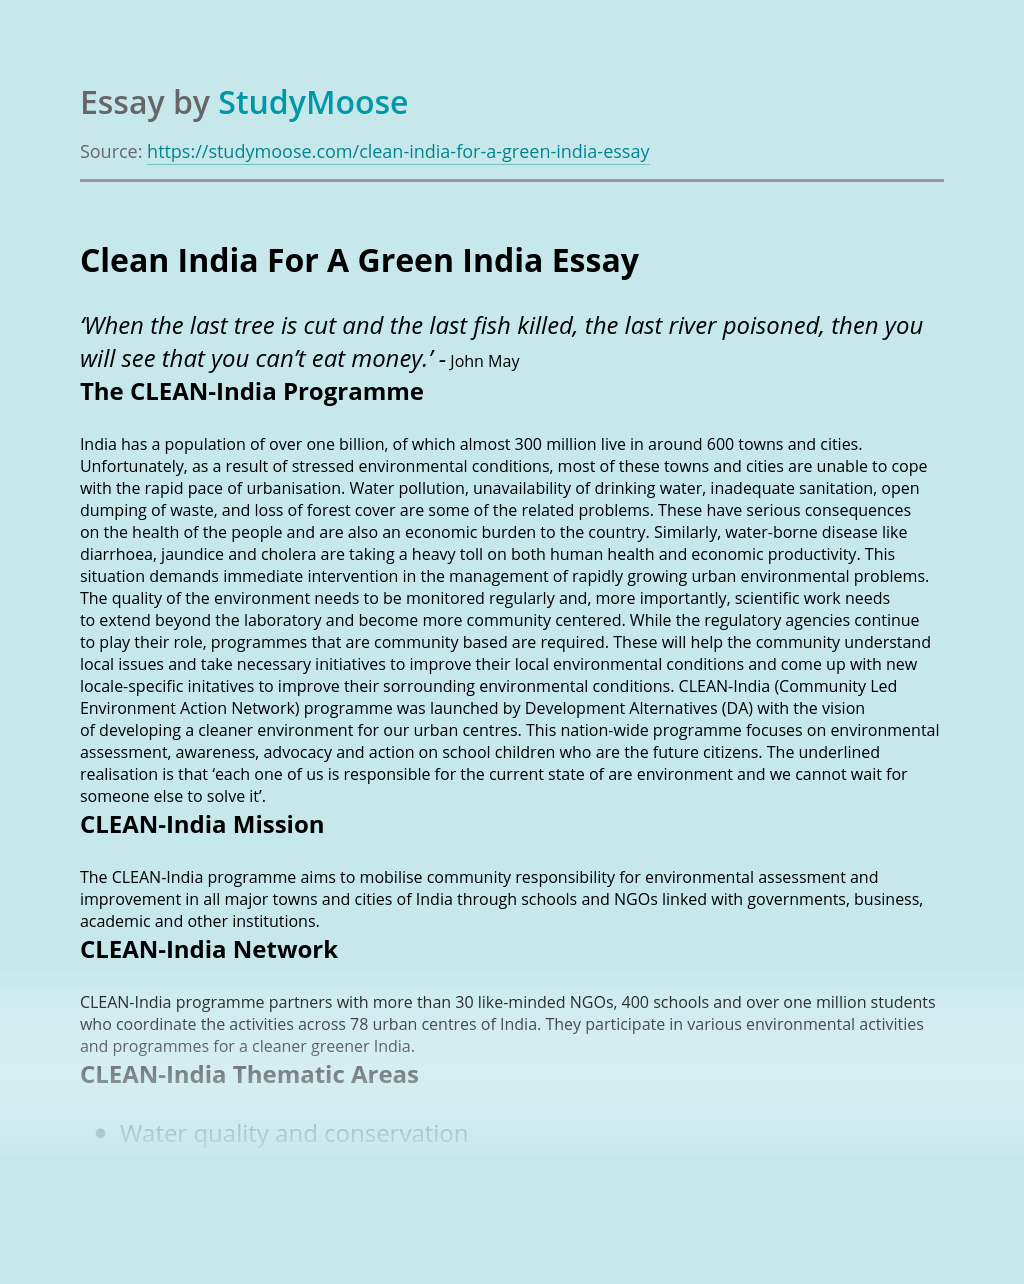 Clean India For A Green India